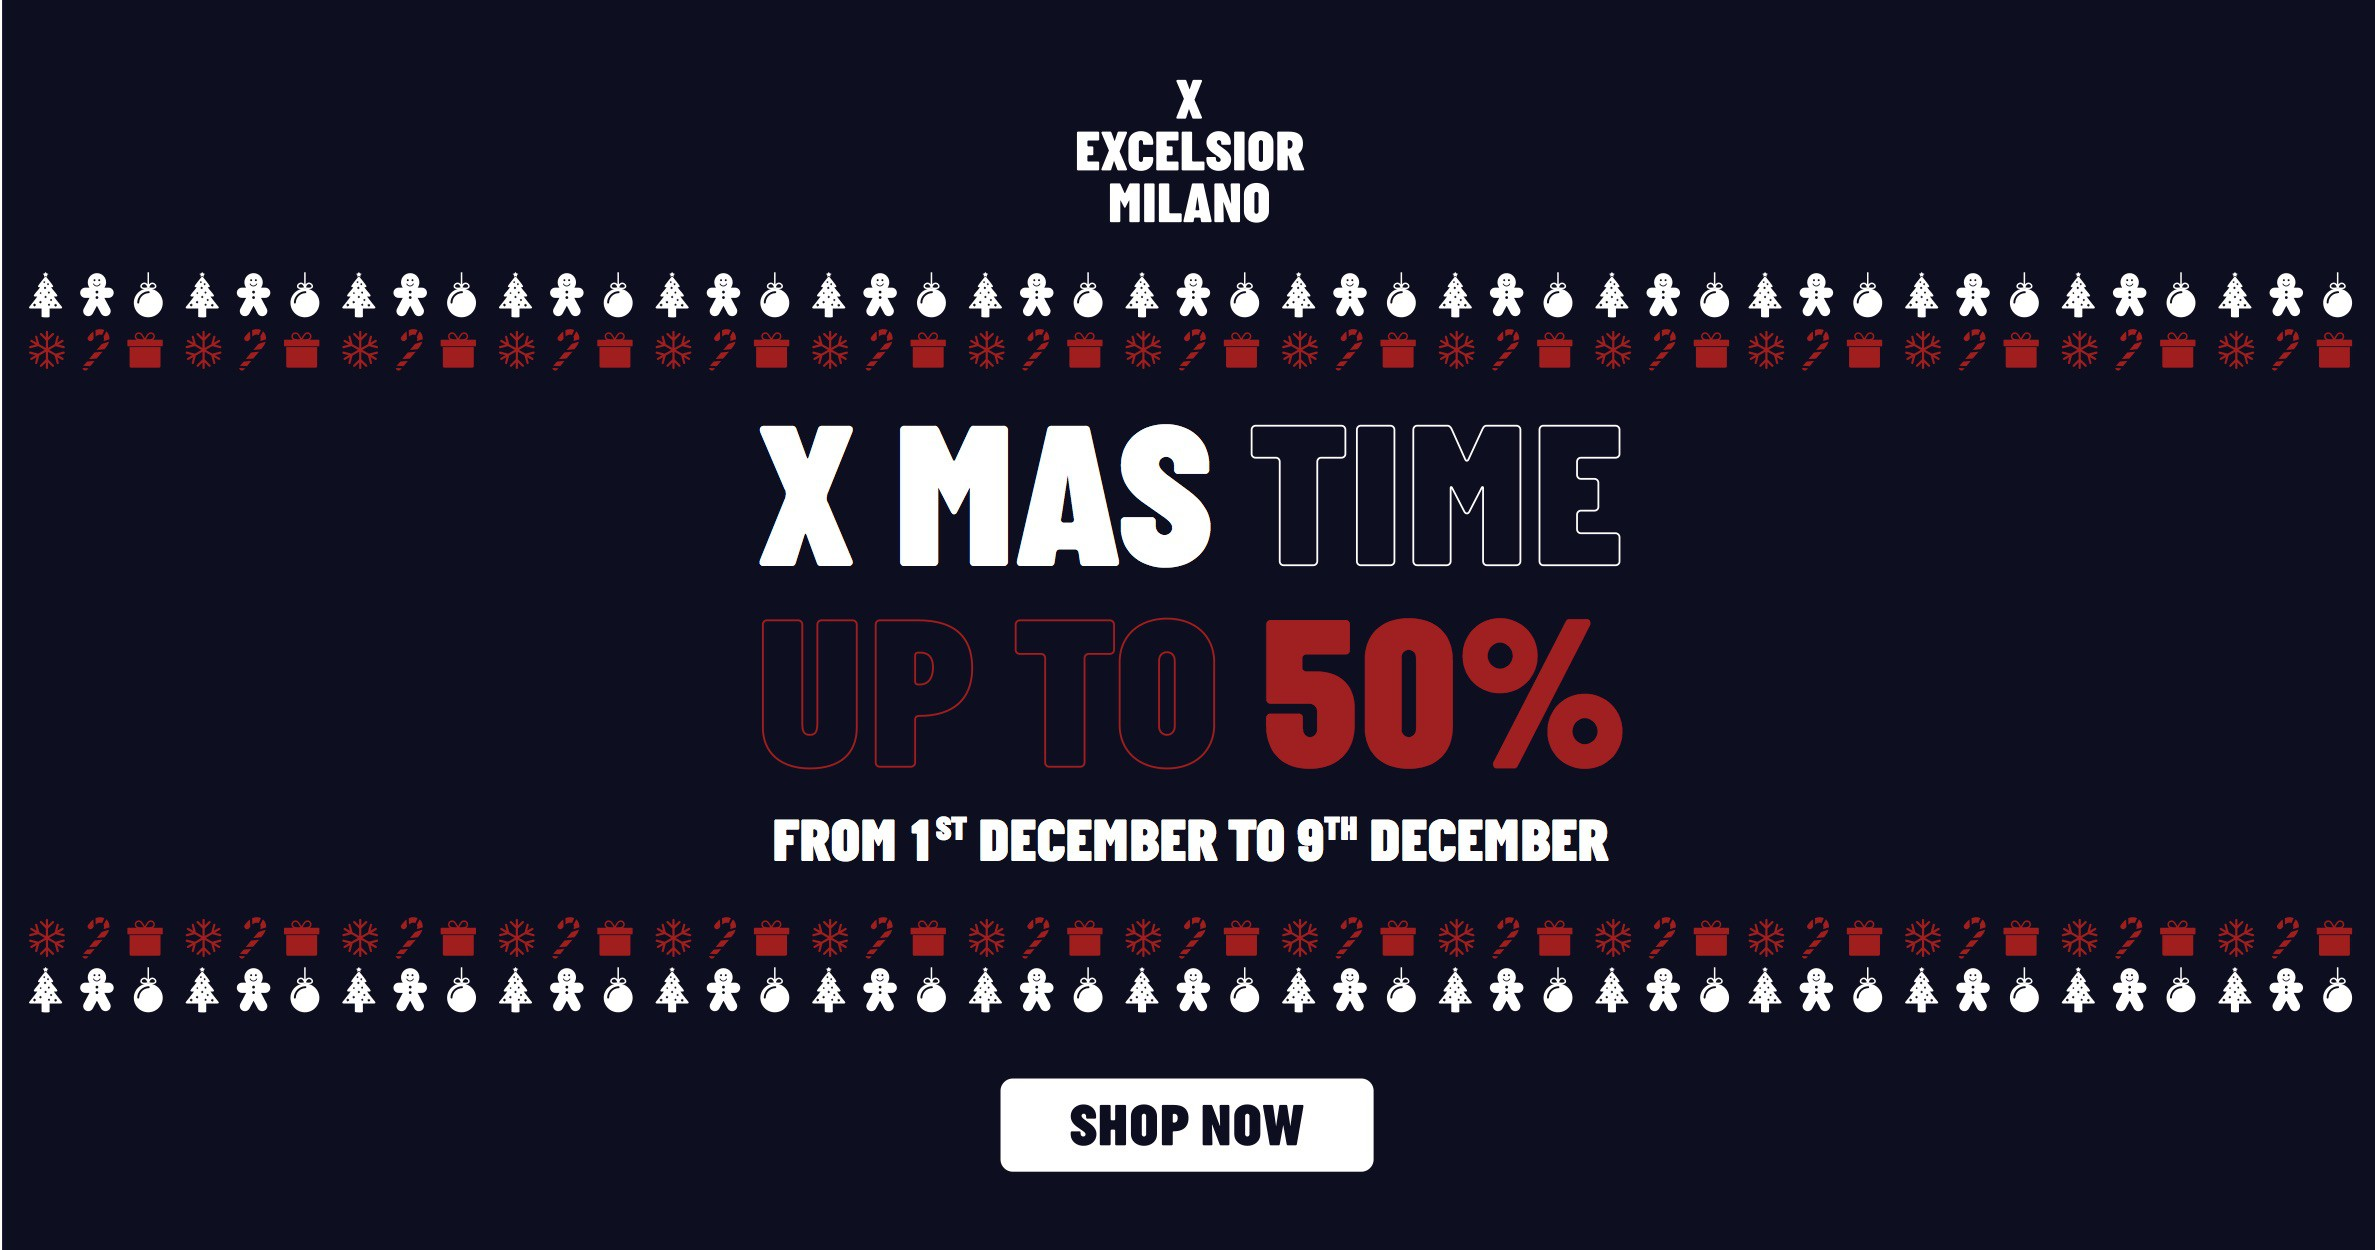 5b5ac3051 HURRY UP !! Just for the next few days enjoy up to 50% off a curated  selection of Top Brands  from December 01 till December 09  nb.